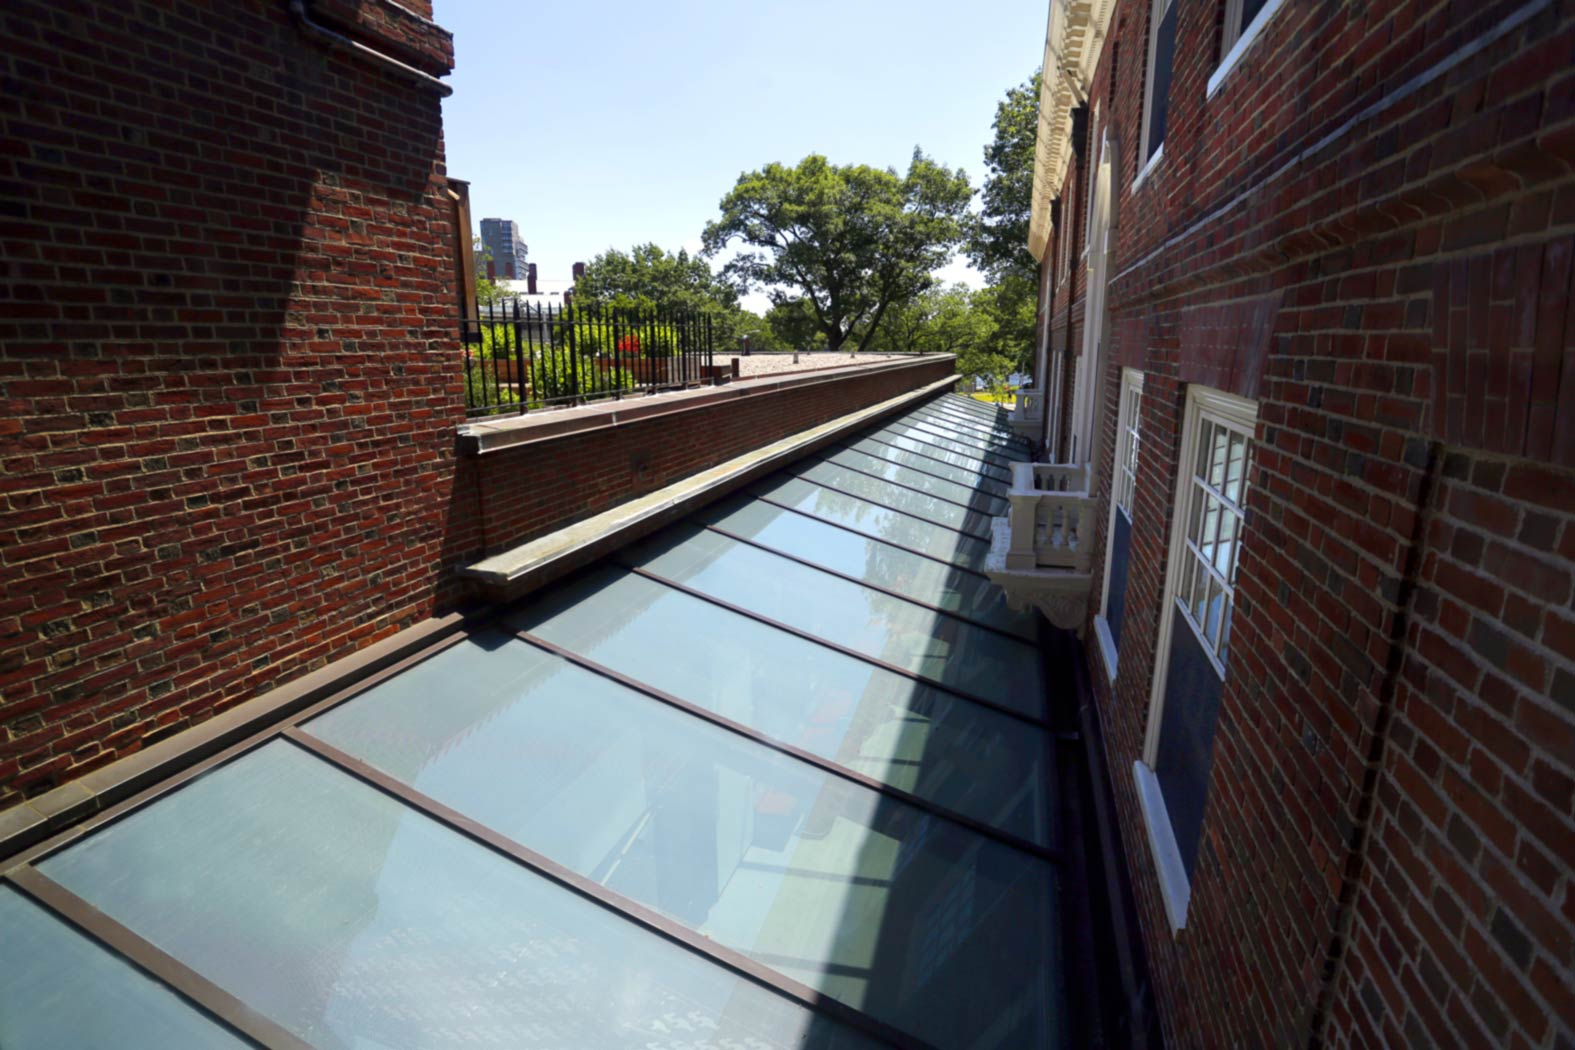 Harvard McKinlock Hall Courtyard Skylight